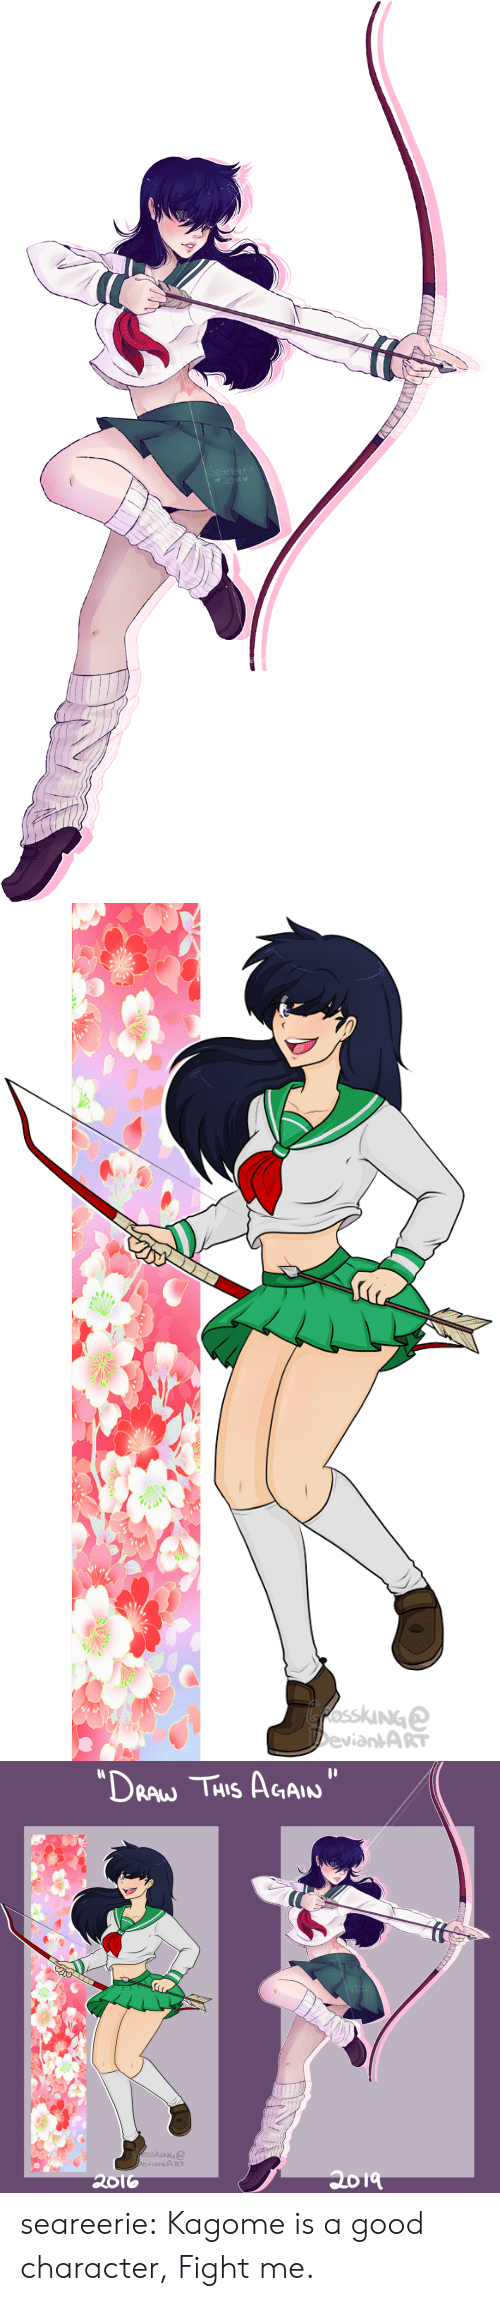 """This Again: Seareecie  2019   GfosskiNGe  DeviantART   """"DRAW THIS AGAIN  Seareecie  2019  fosskinG  DeviantART  2019  2016 seareerie:  Kagome is a good character, Fight me."""